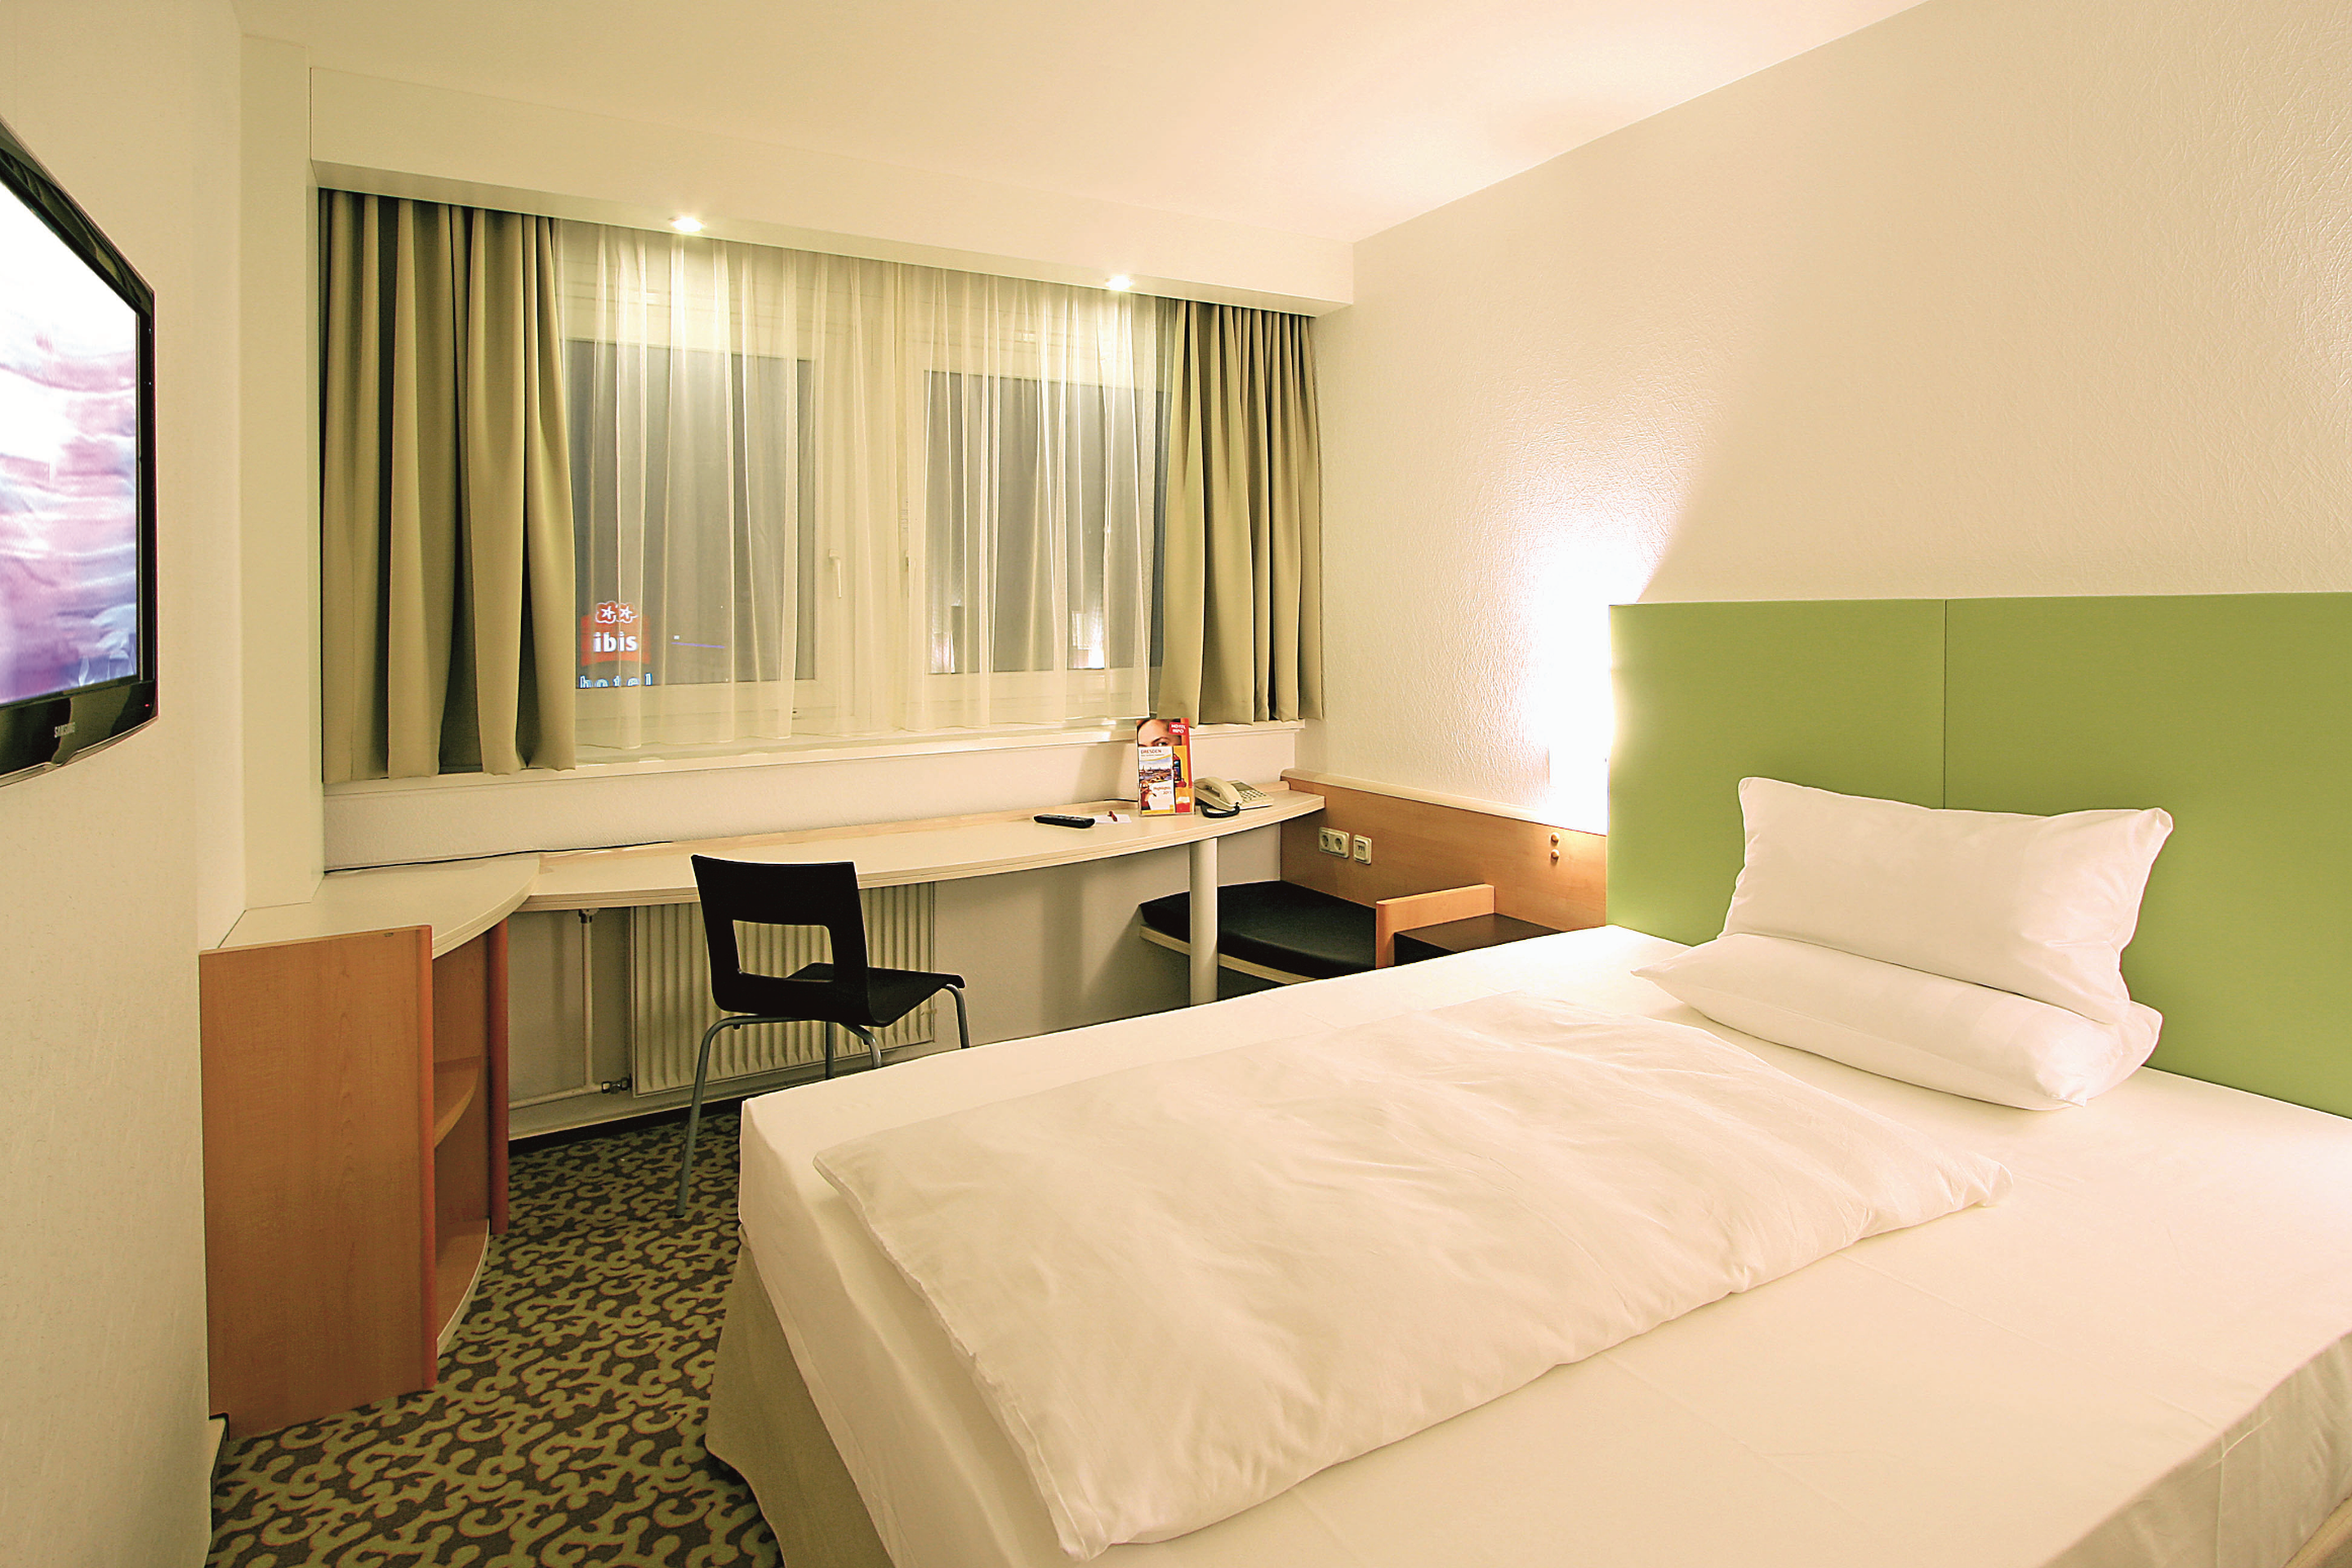 File:Ibis Hotels Dresden Single Room Standard Queen Size Bed.png.